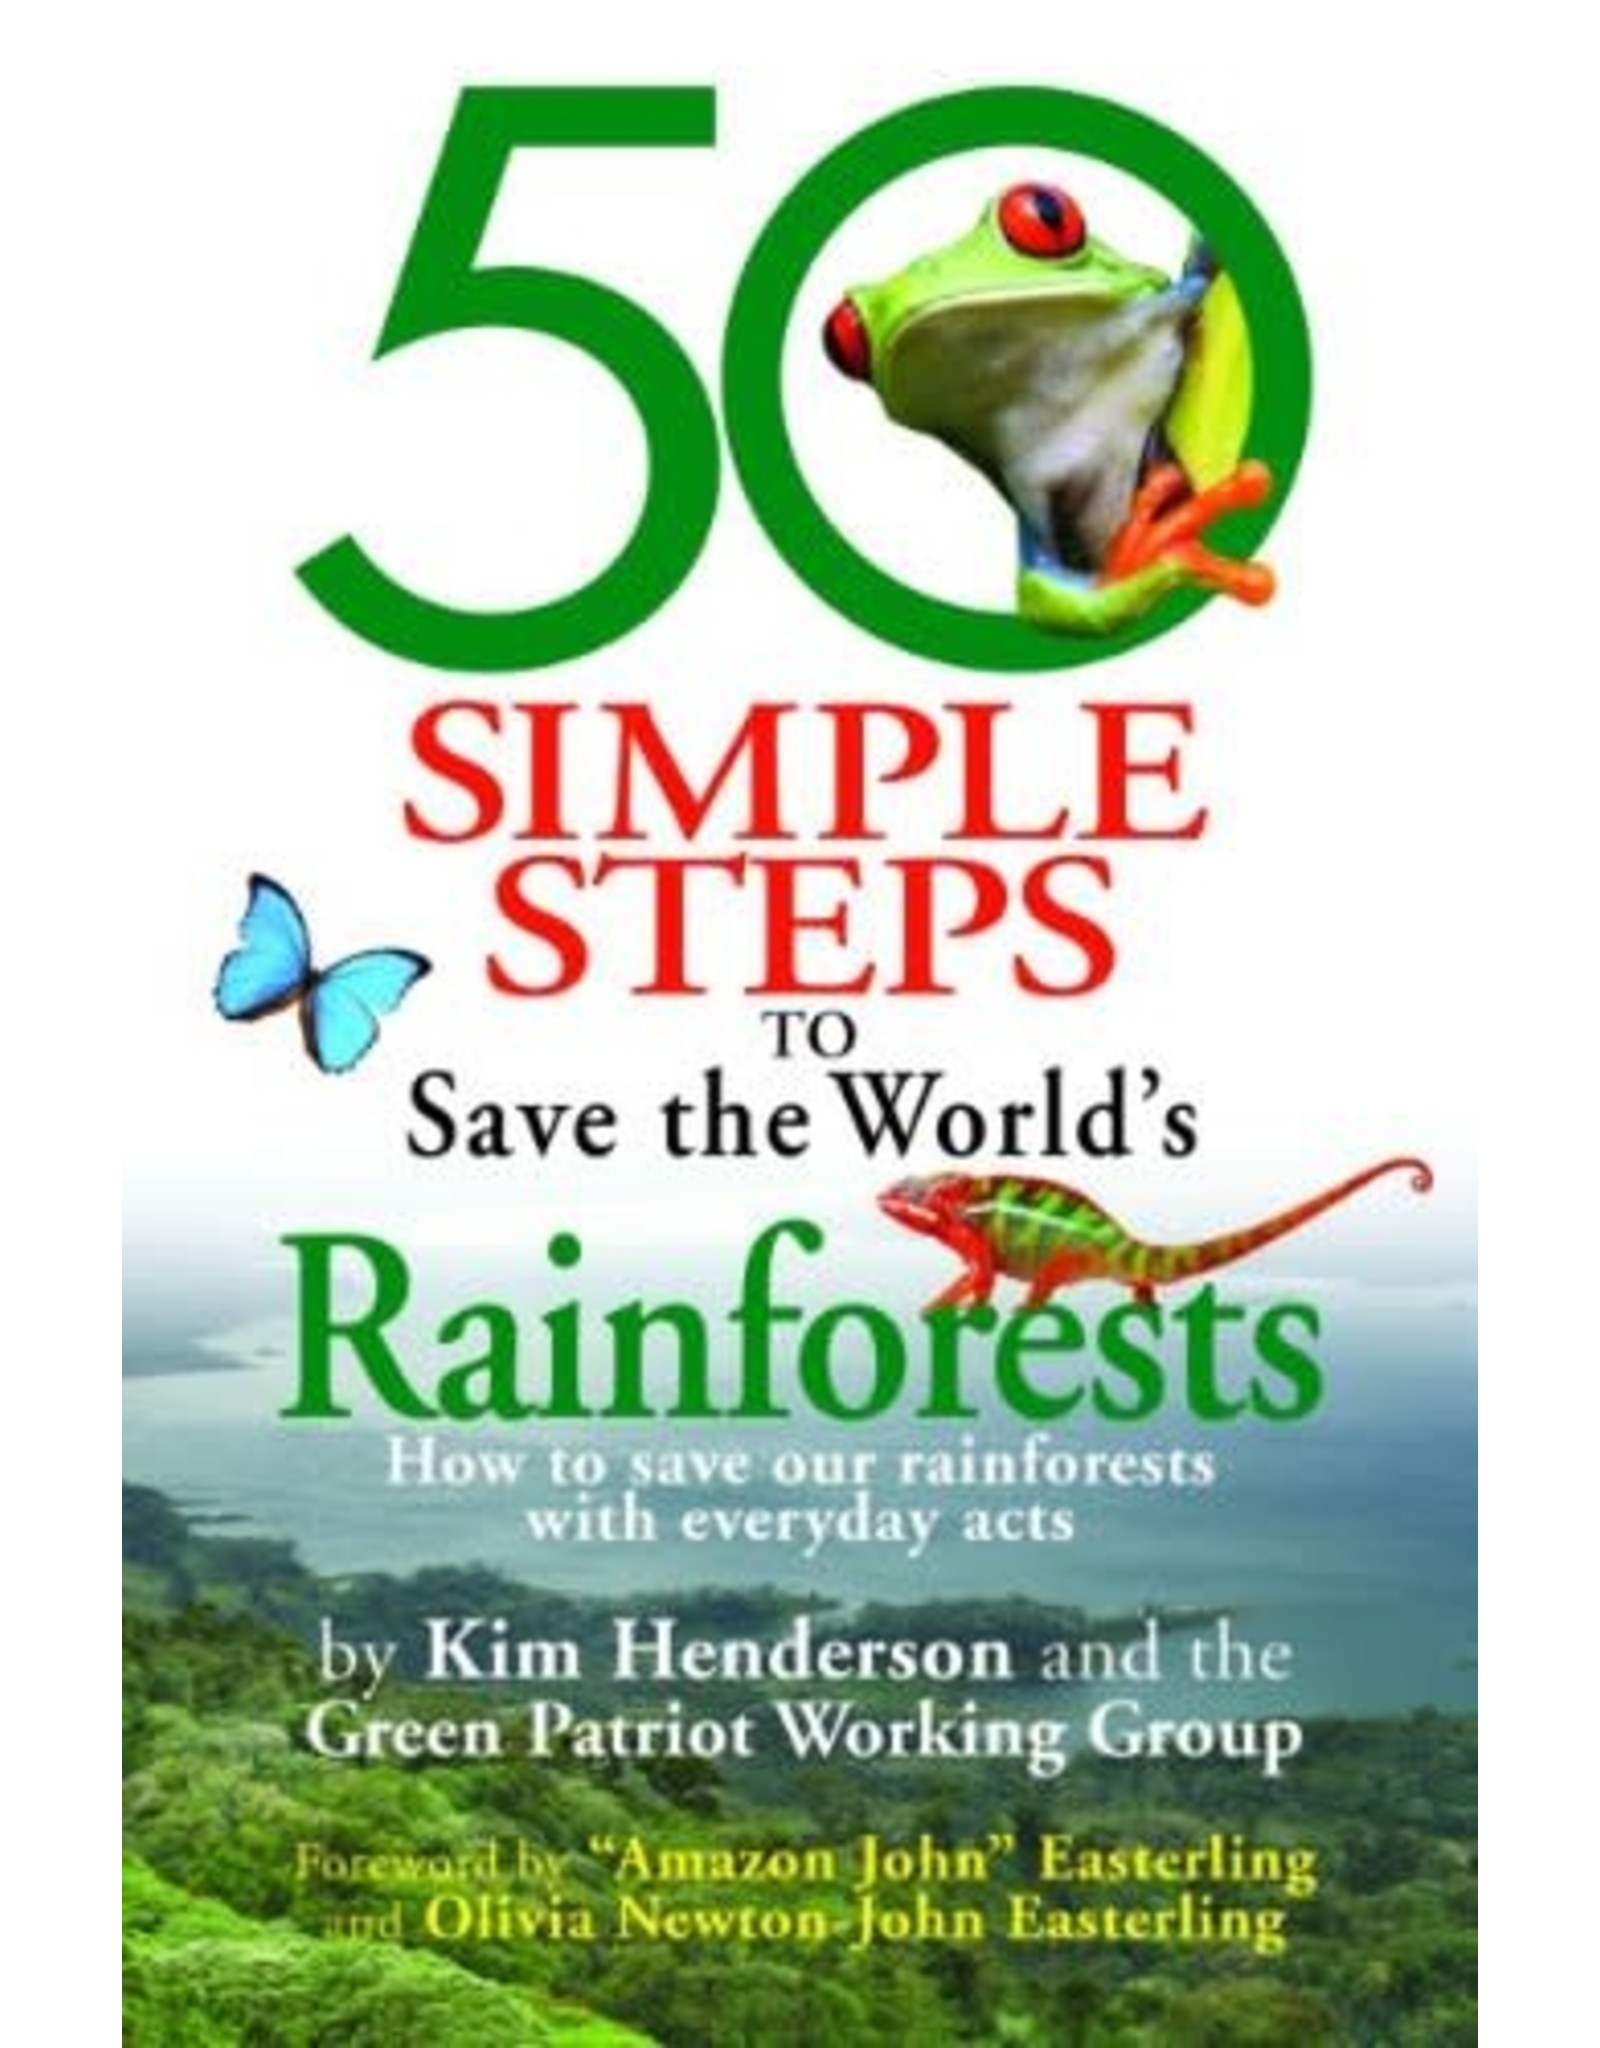 Brumby Sunstate 50 Simple Steps To Save The World's Rainforests - Kim Henderson